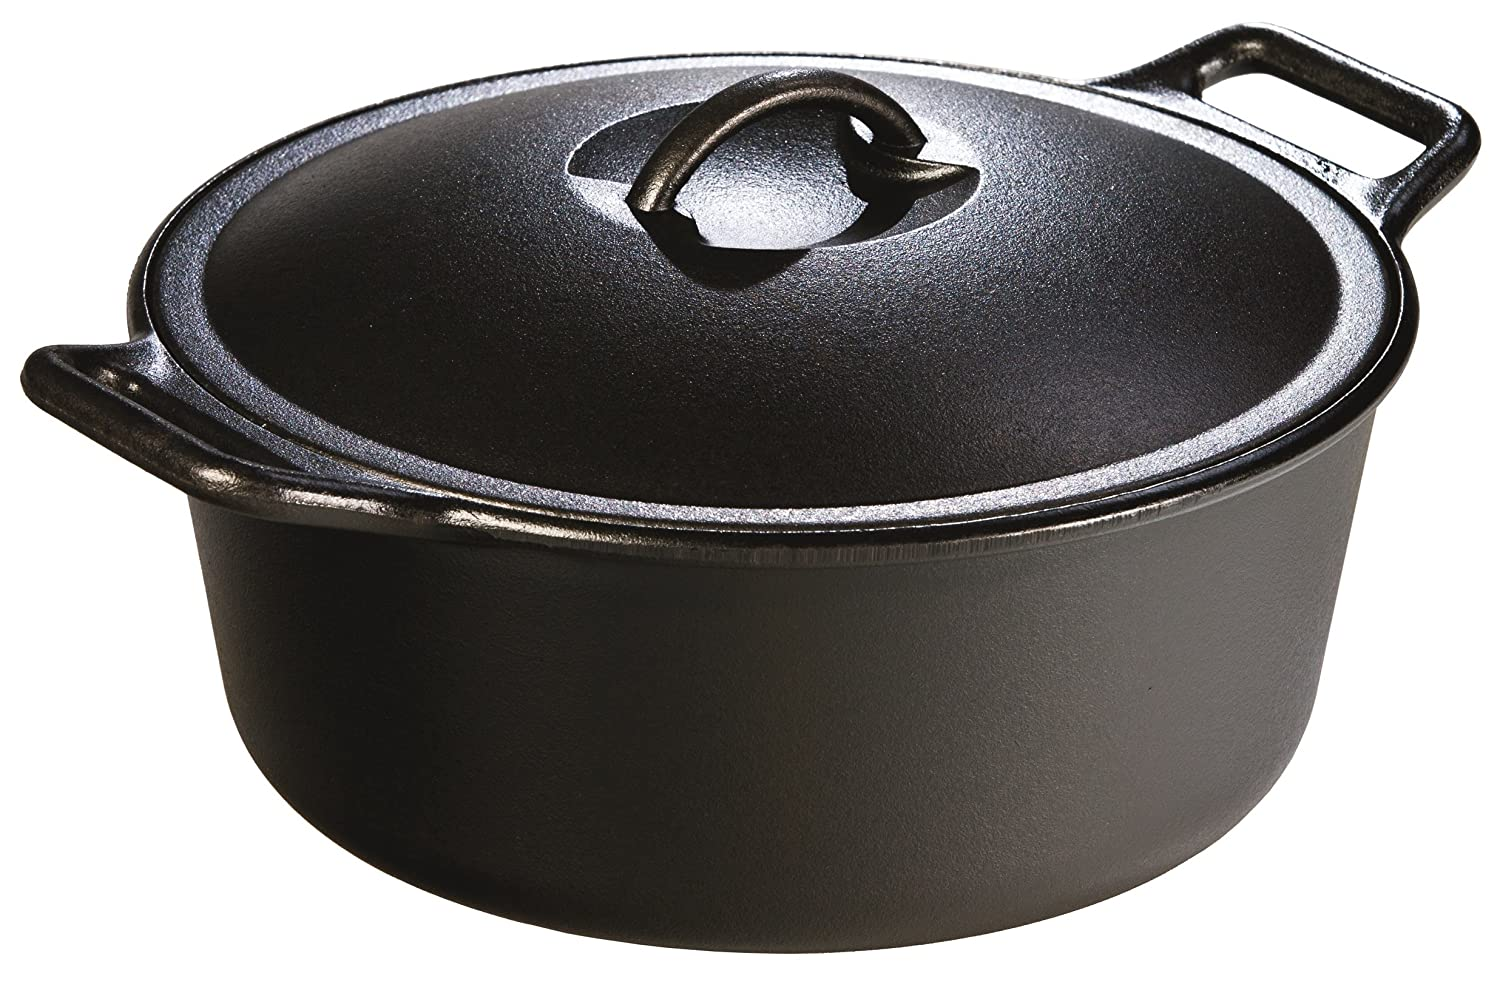 Lodge 6.62 litre / 7 quart Pre-Seasoned Cast Iron Dutch Oven (with Loop Handles) P12D3